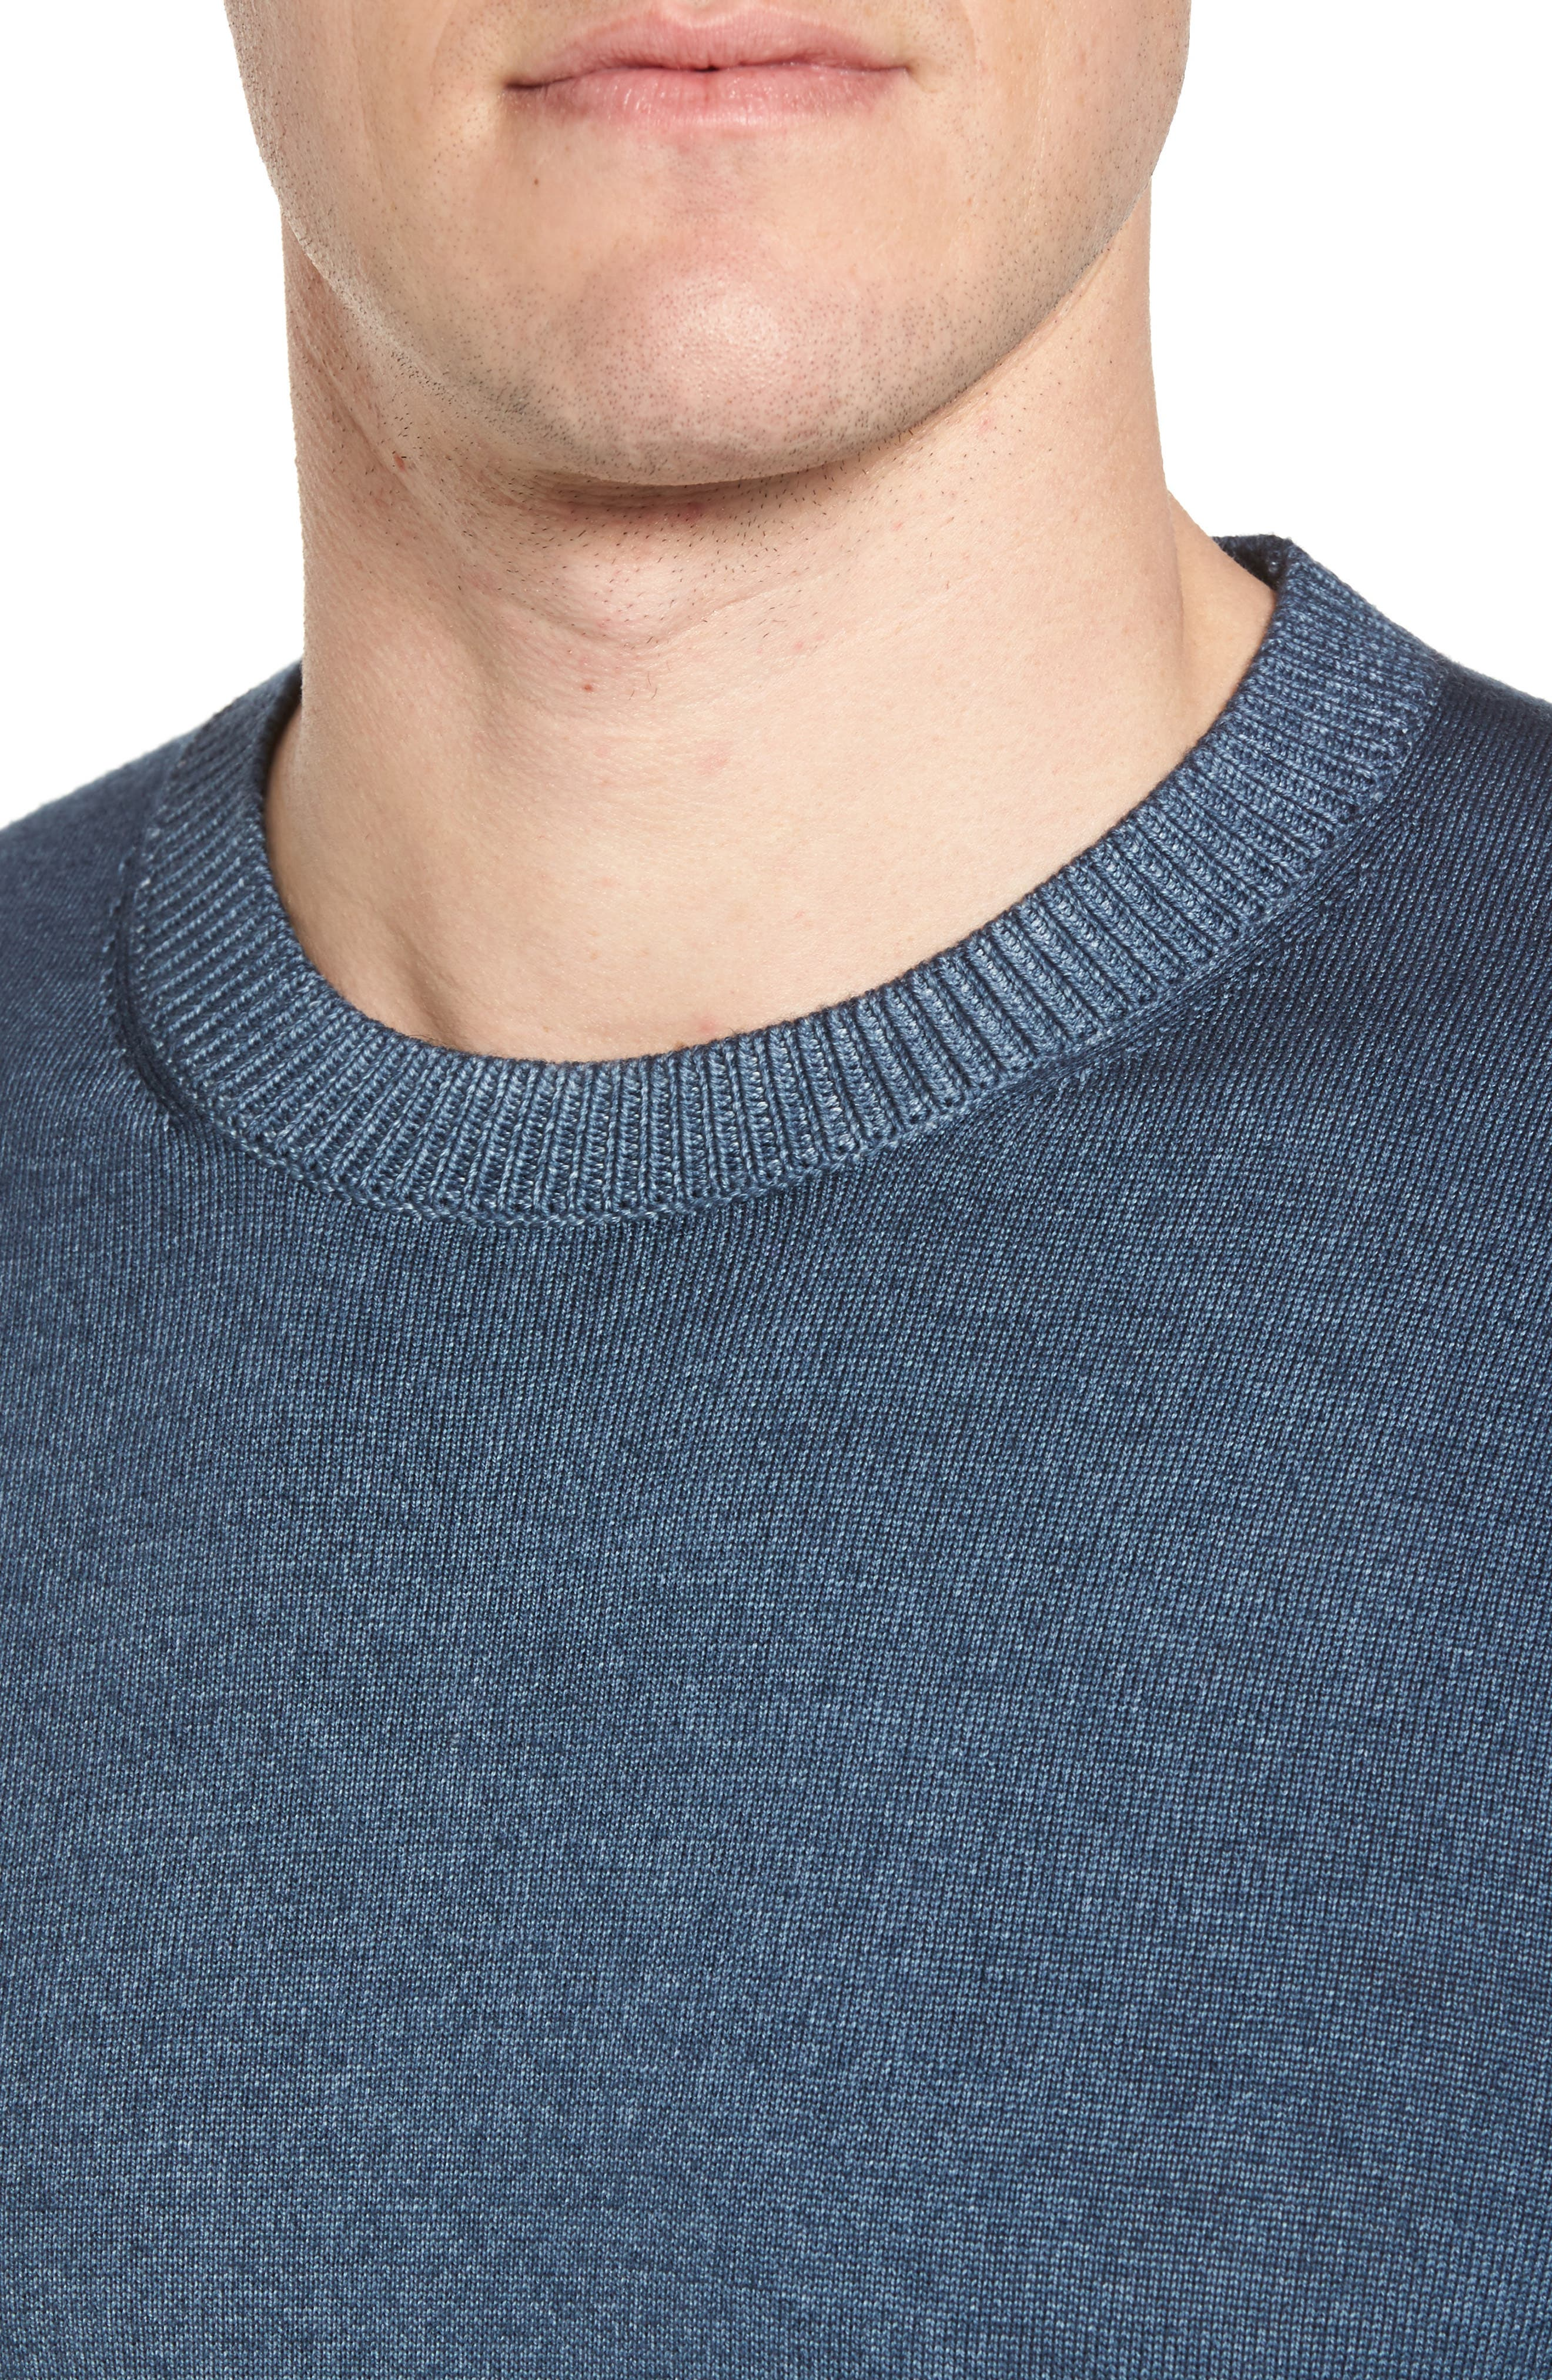 Lucky Trim Fit Wool Sweater,                             Alternate thumbnail 4, color,                             Mid Blue